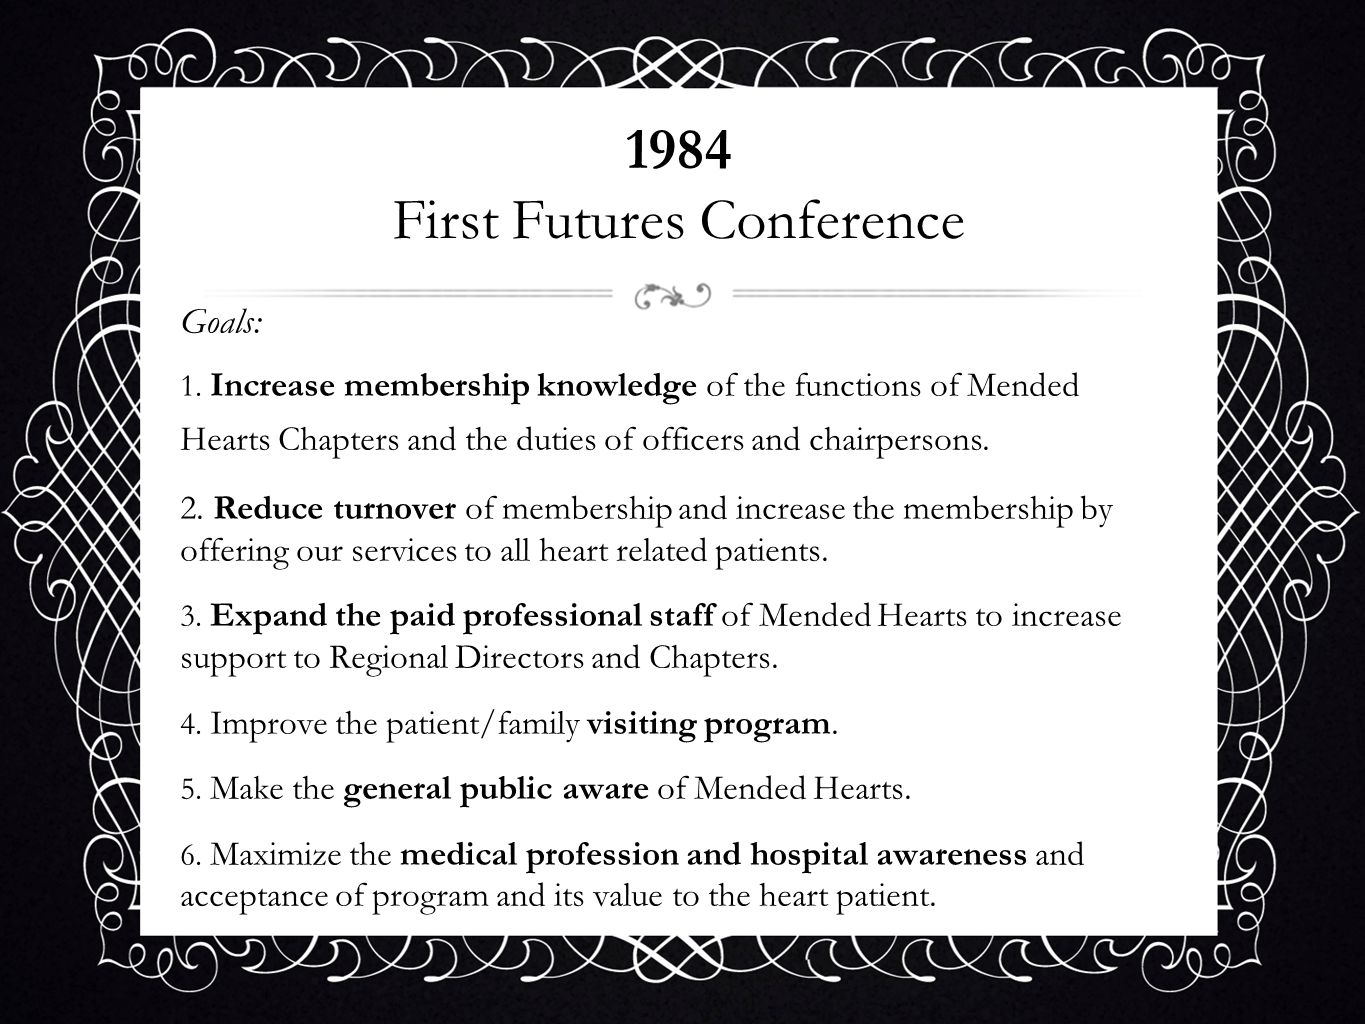 1984 First Futures Conference